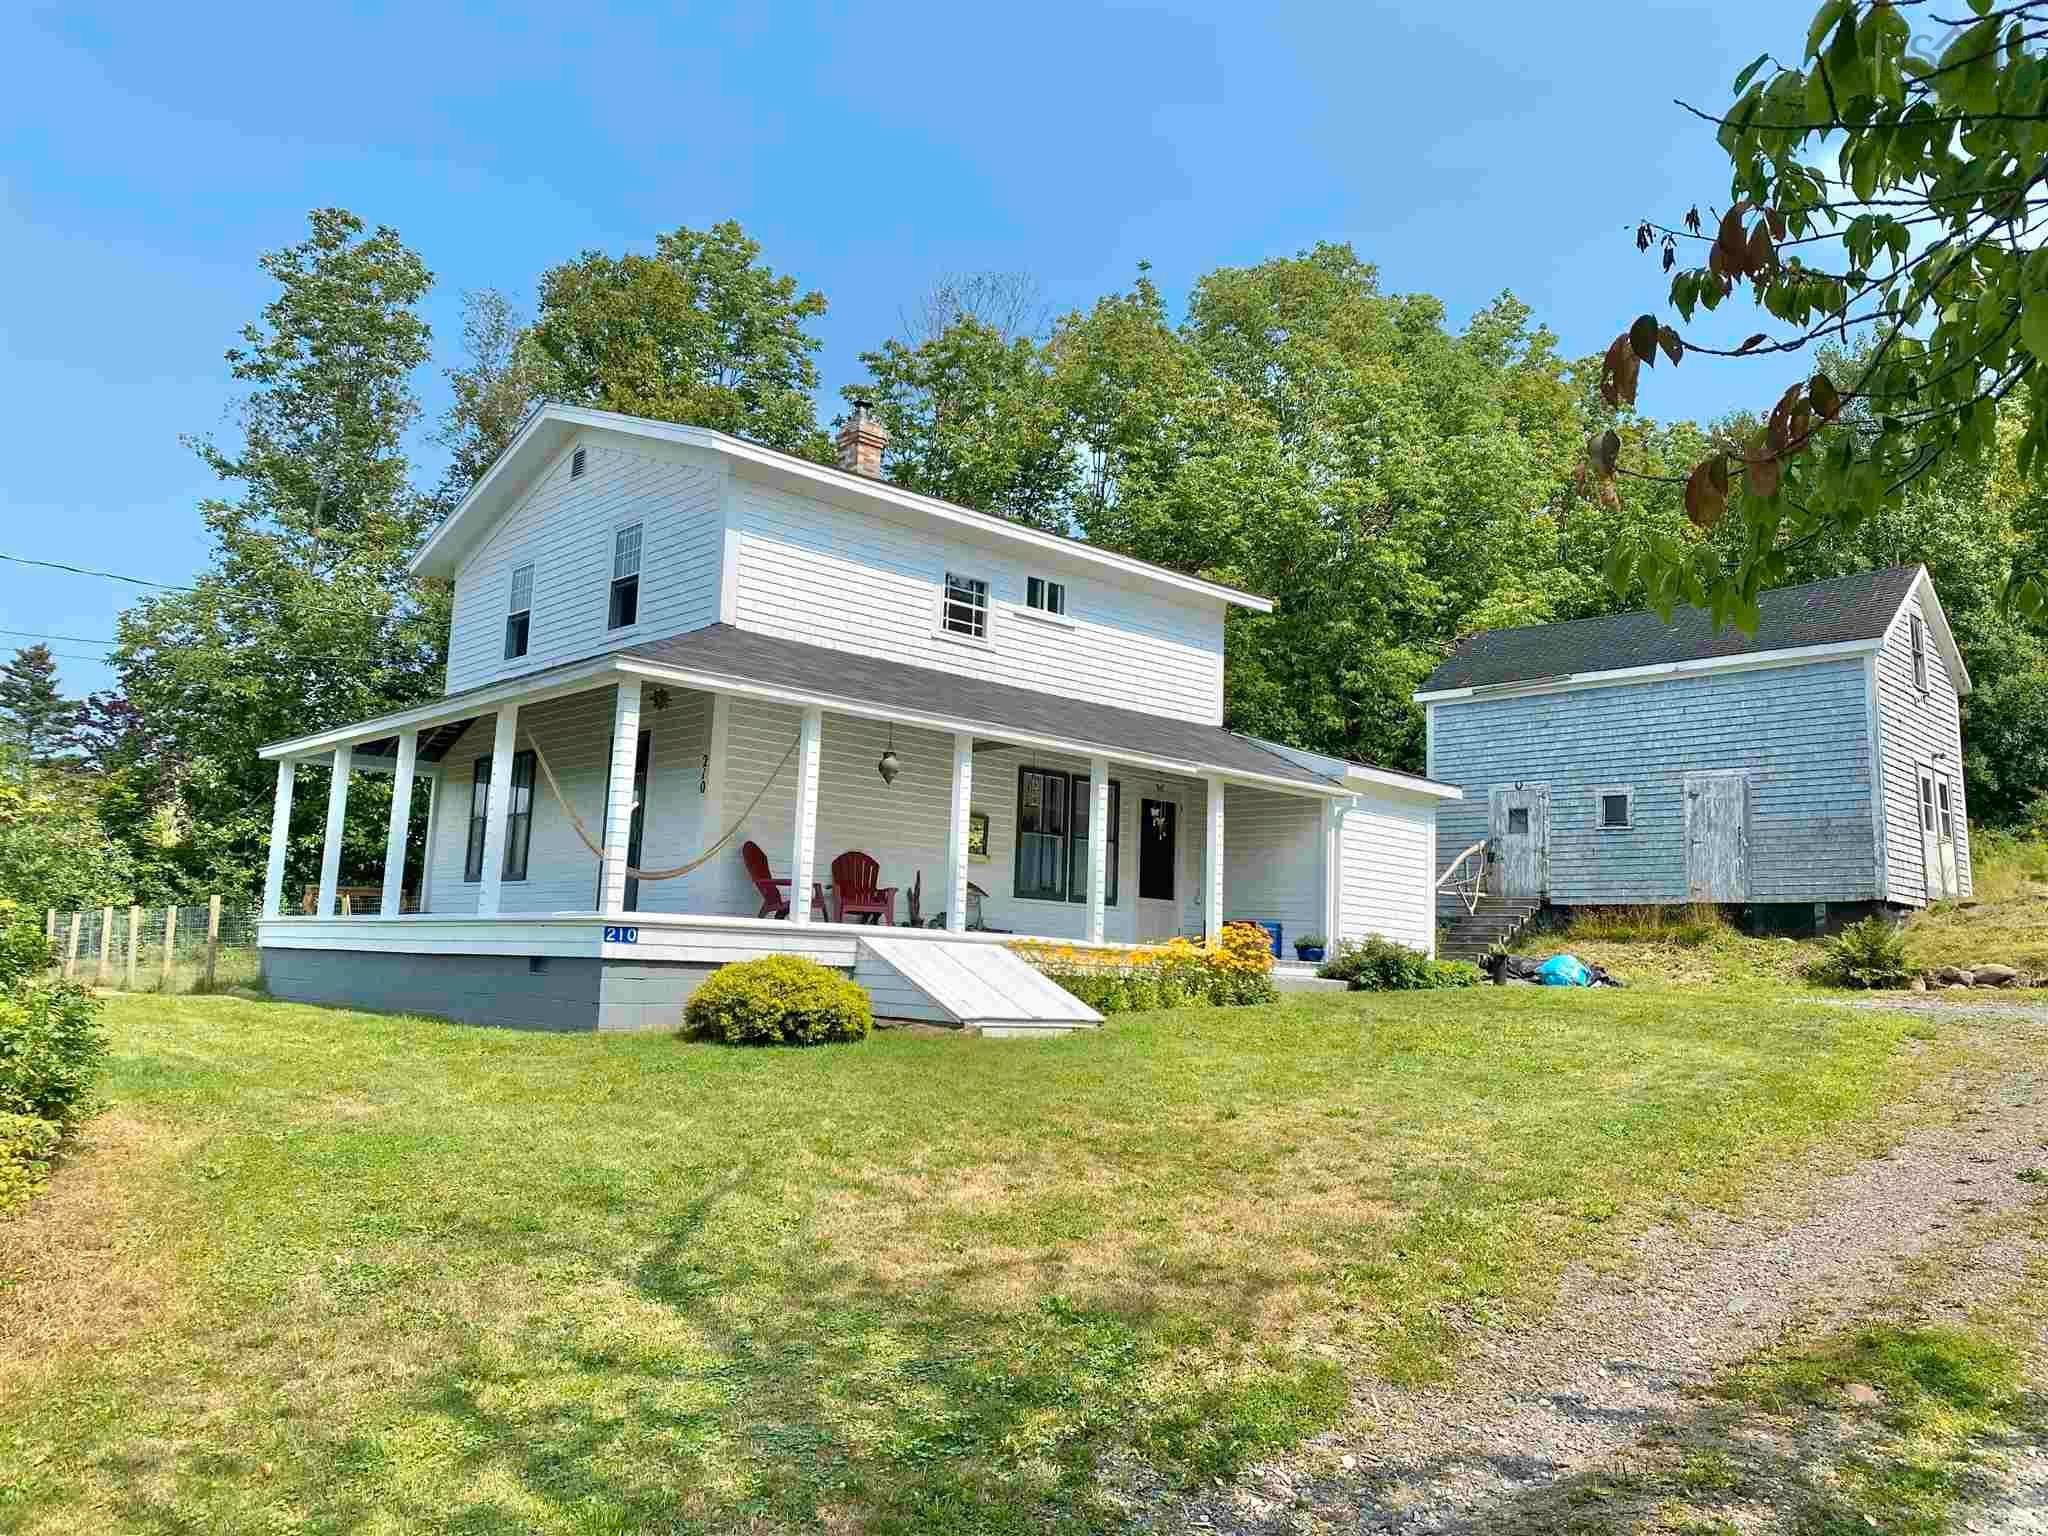 Main Photo: 210 Highway 1 in Smiths Cove: 401-Digby County Residential for sale (Annapolis Valley)  : MLS®# 202121086